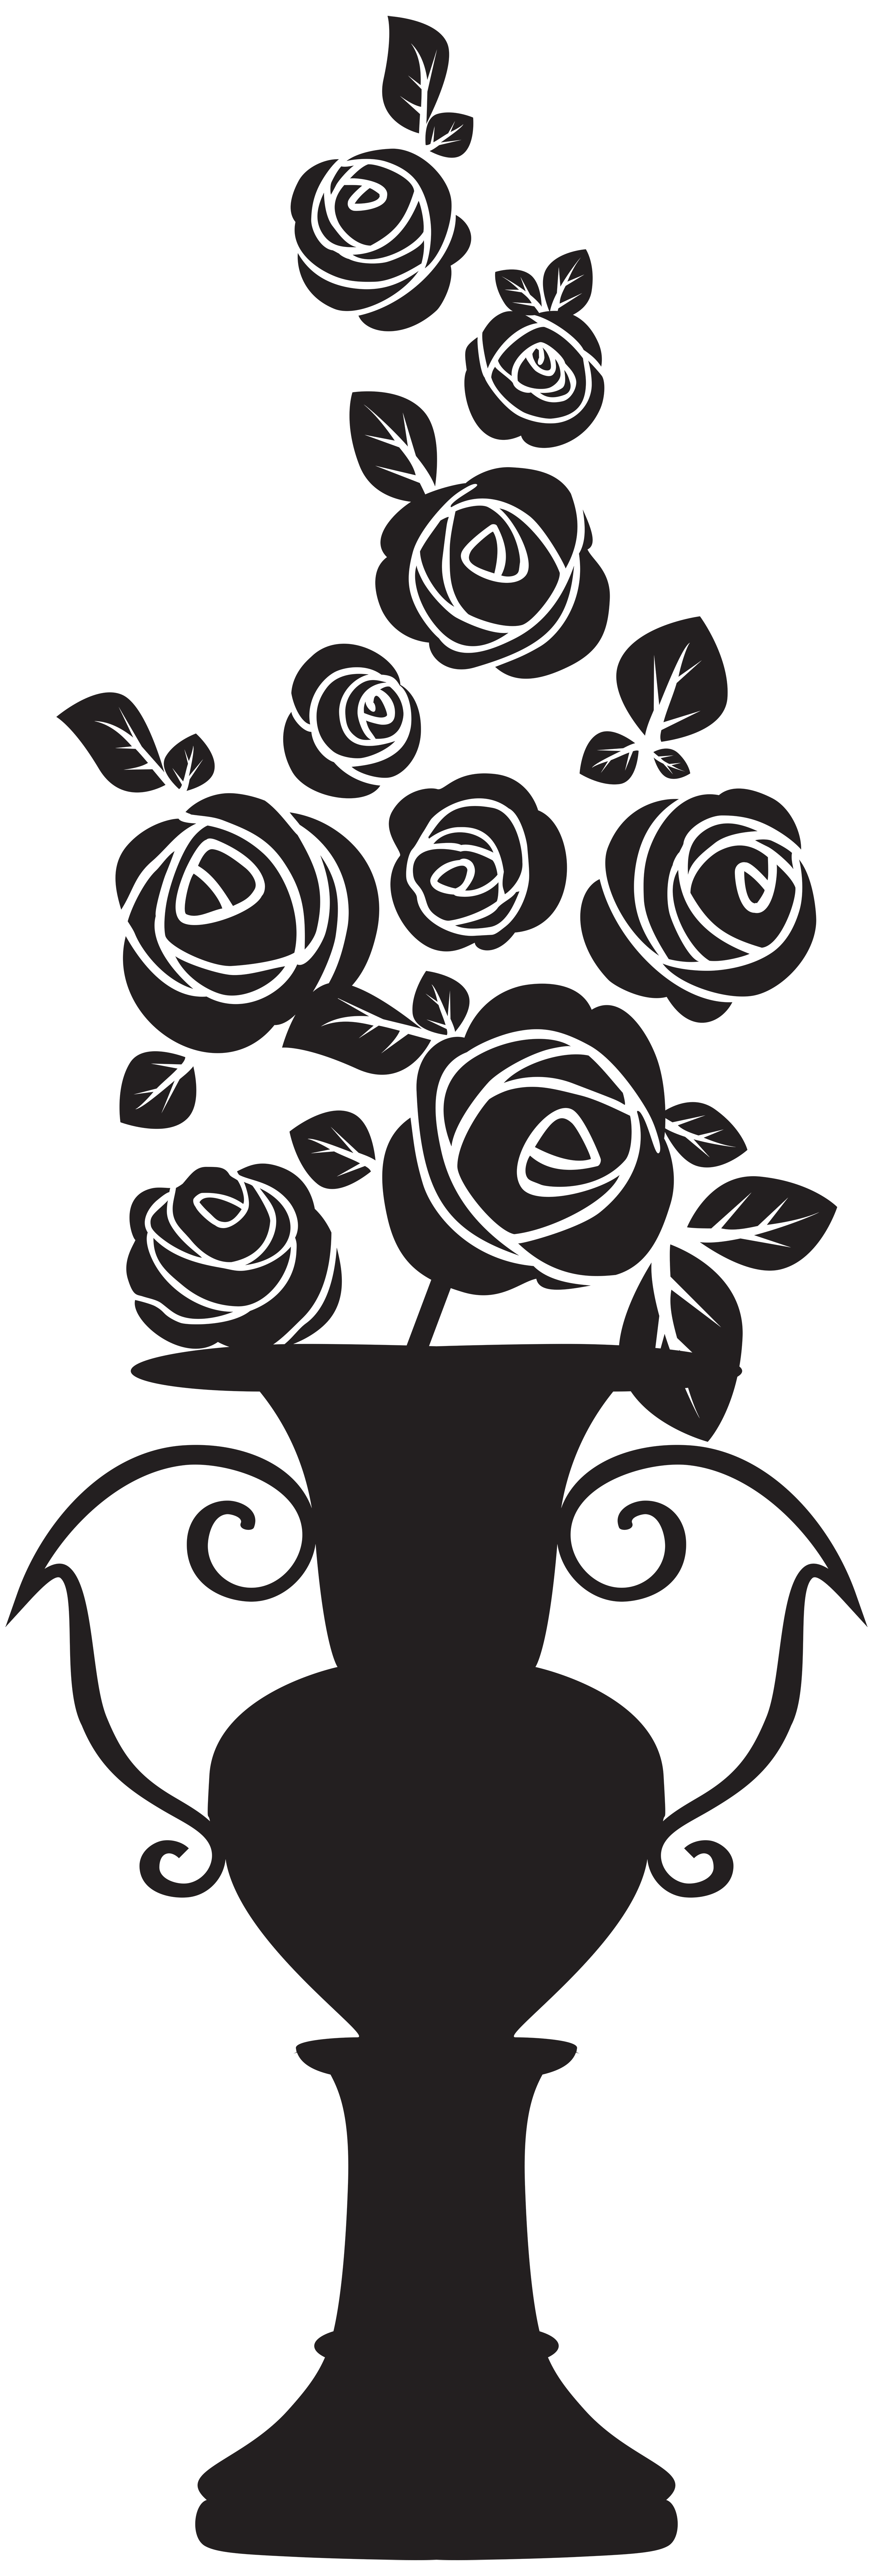 Jar clipart calming. Vase with roses silhouette